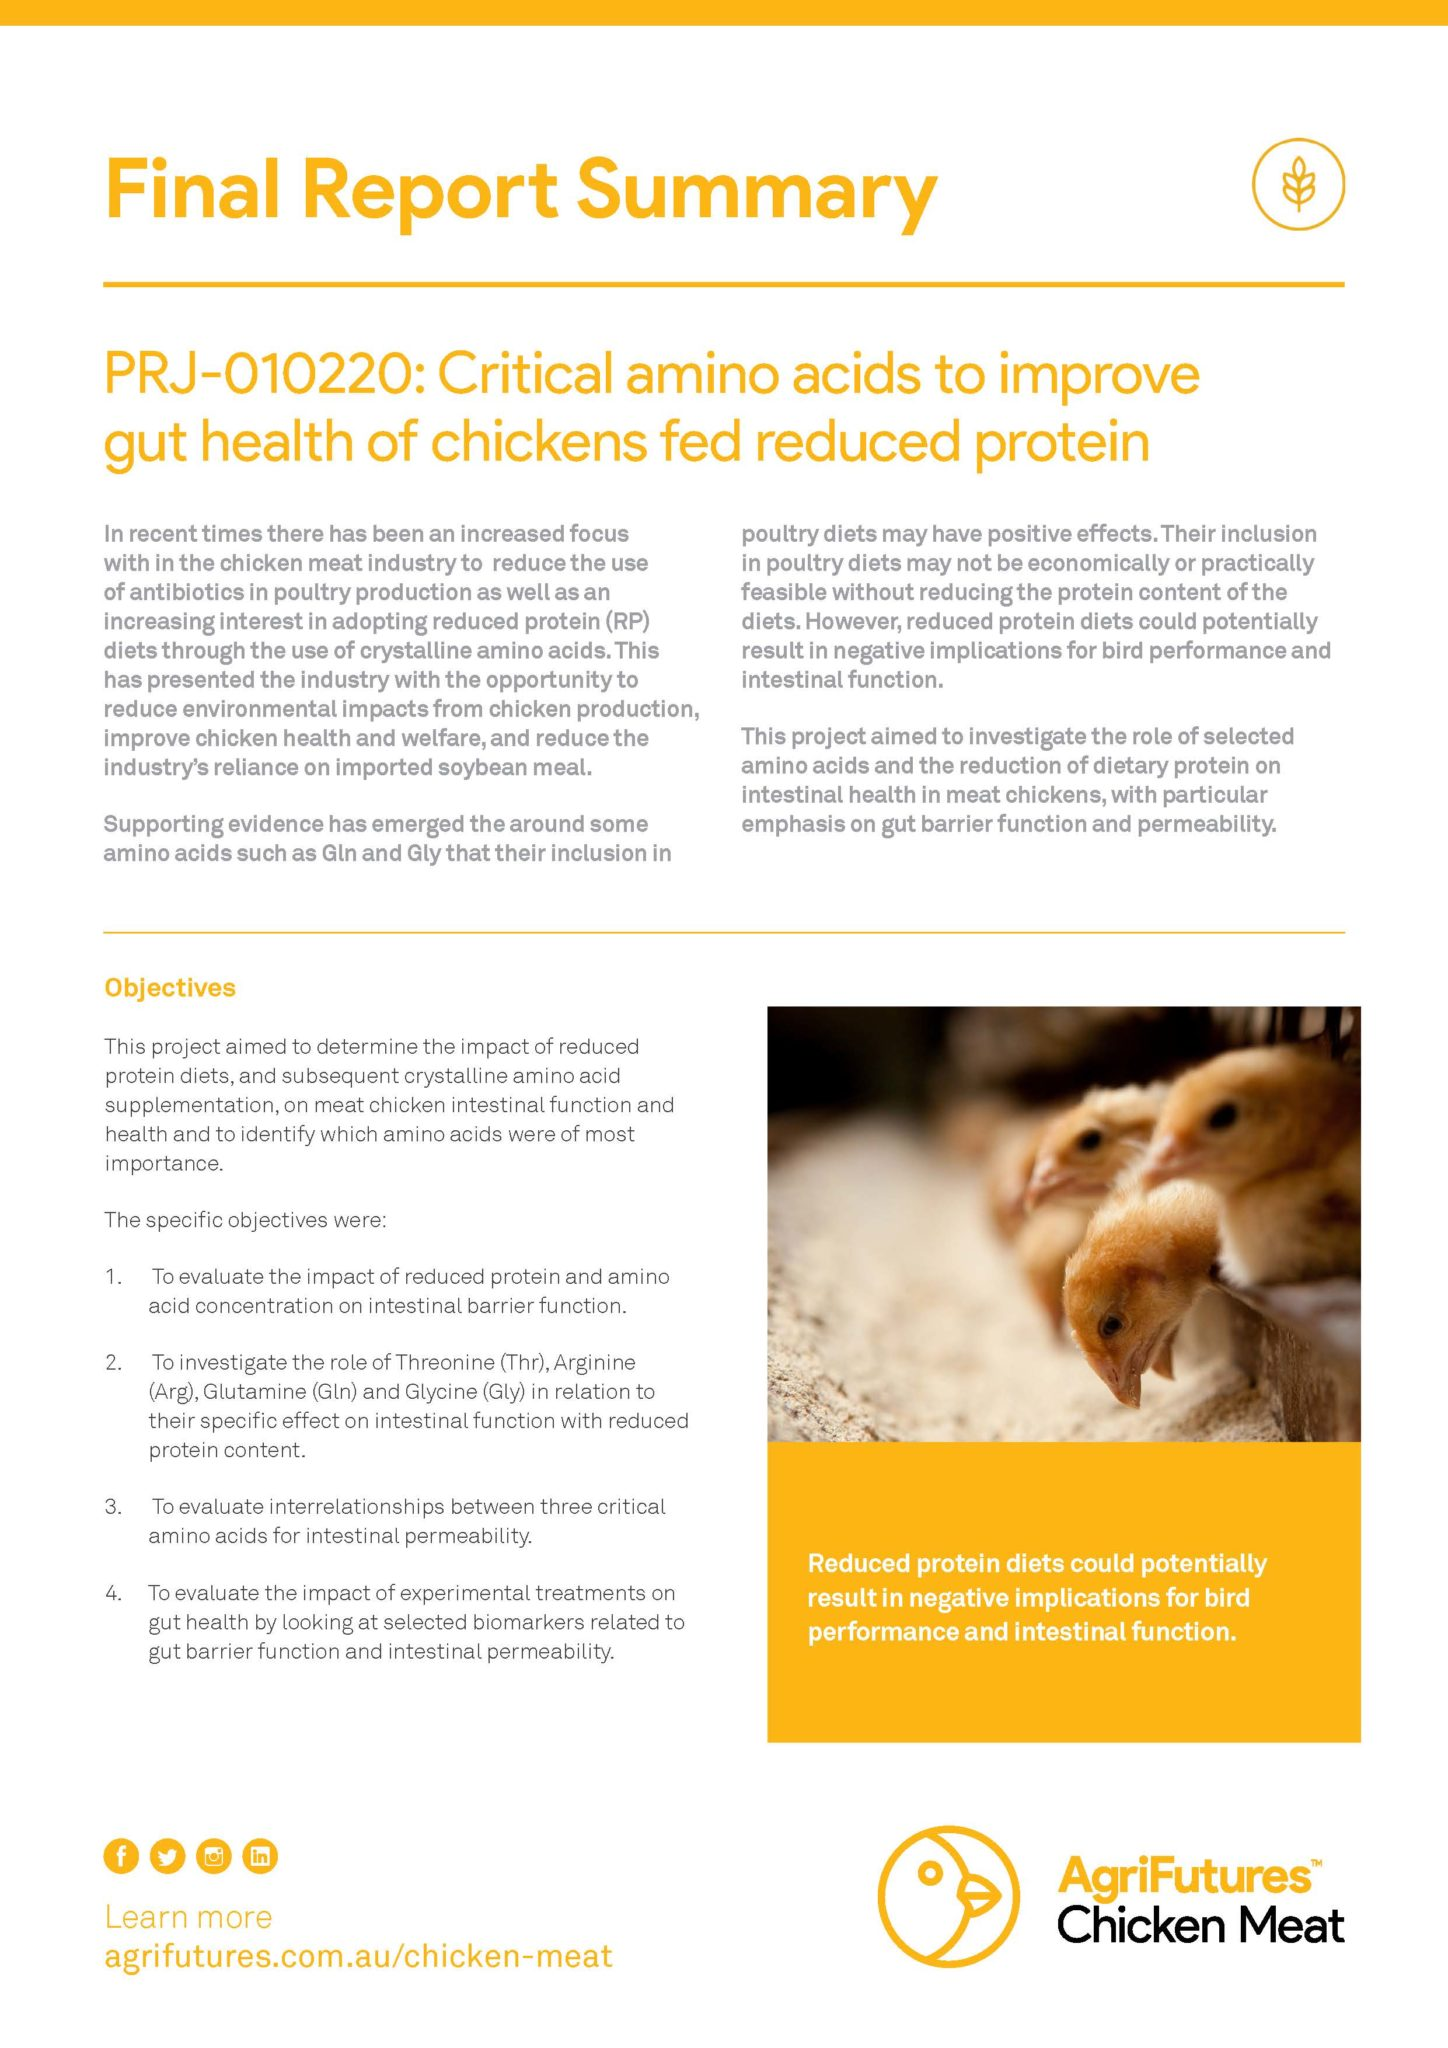 Final Report Summary: Critical amino acids to improve gut health of chickens fed reduced protein - image